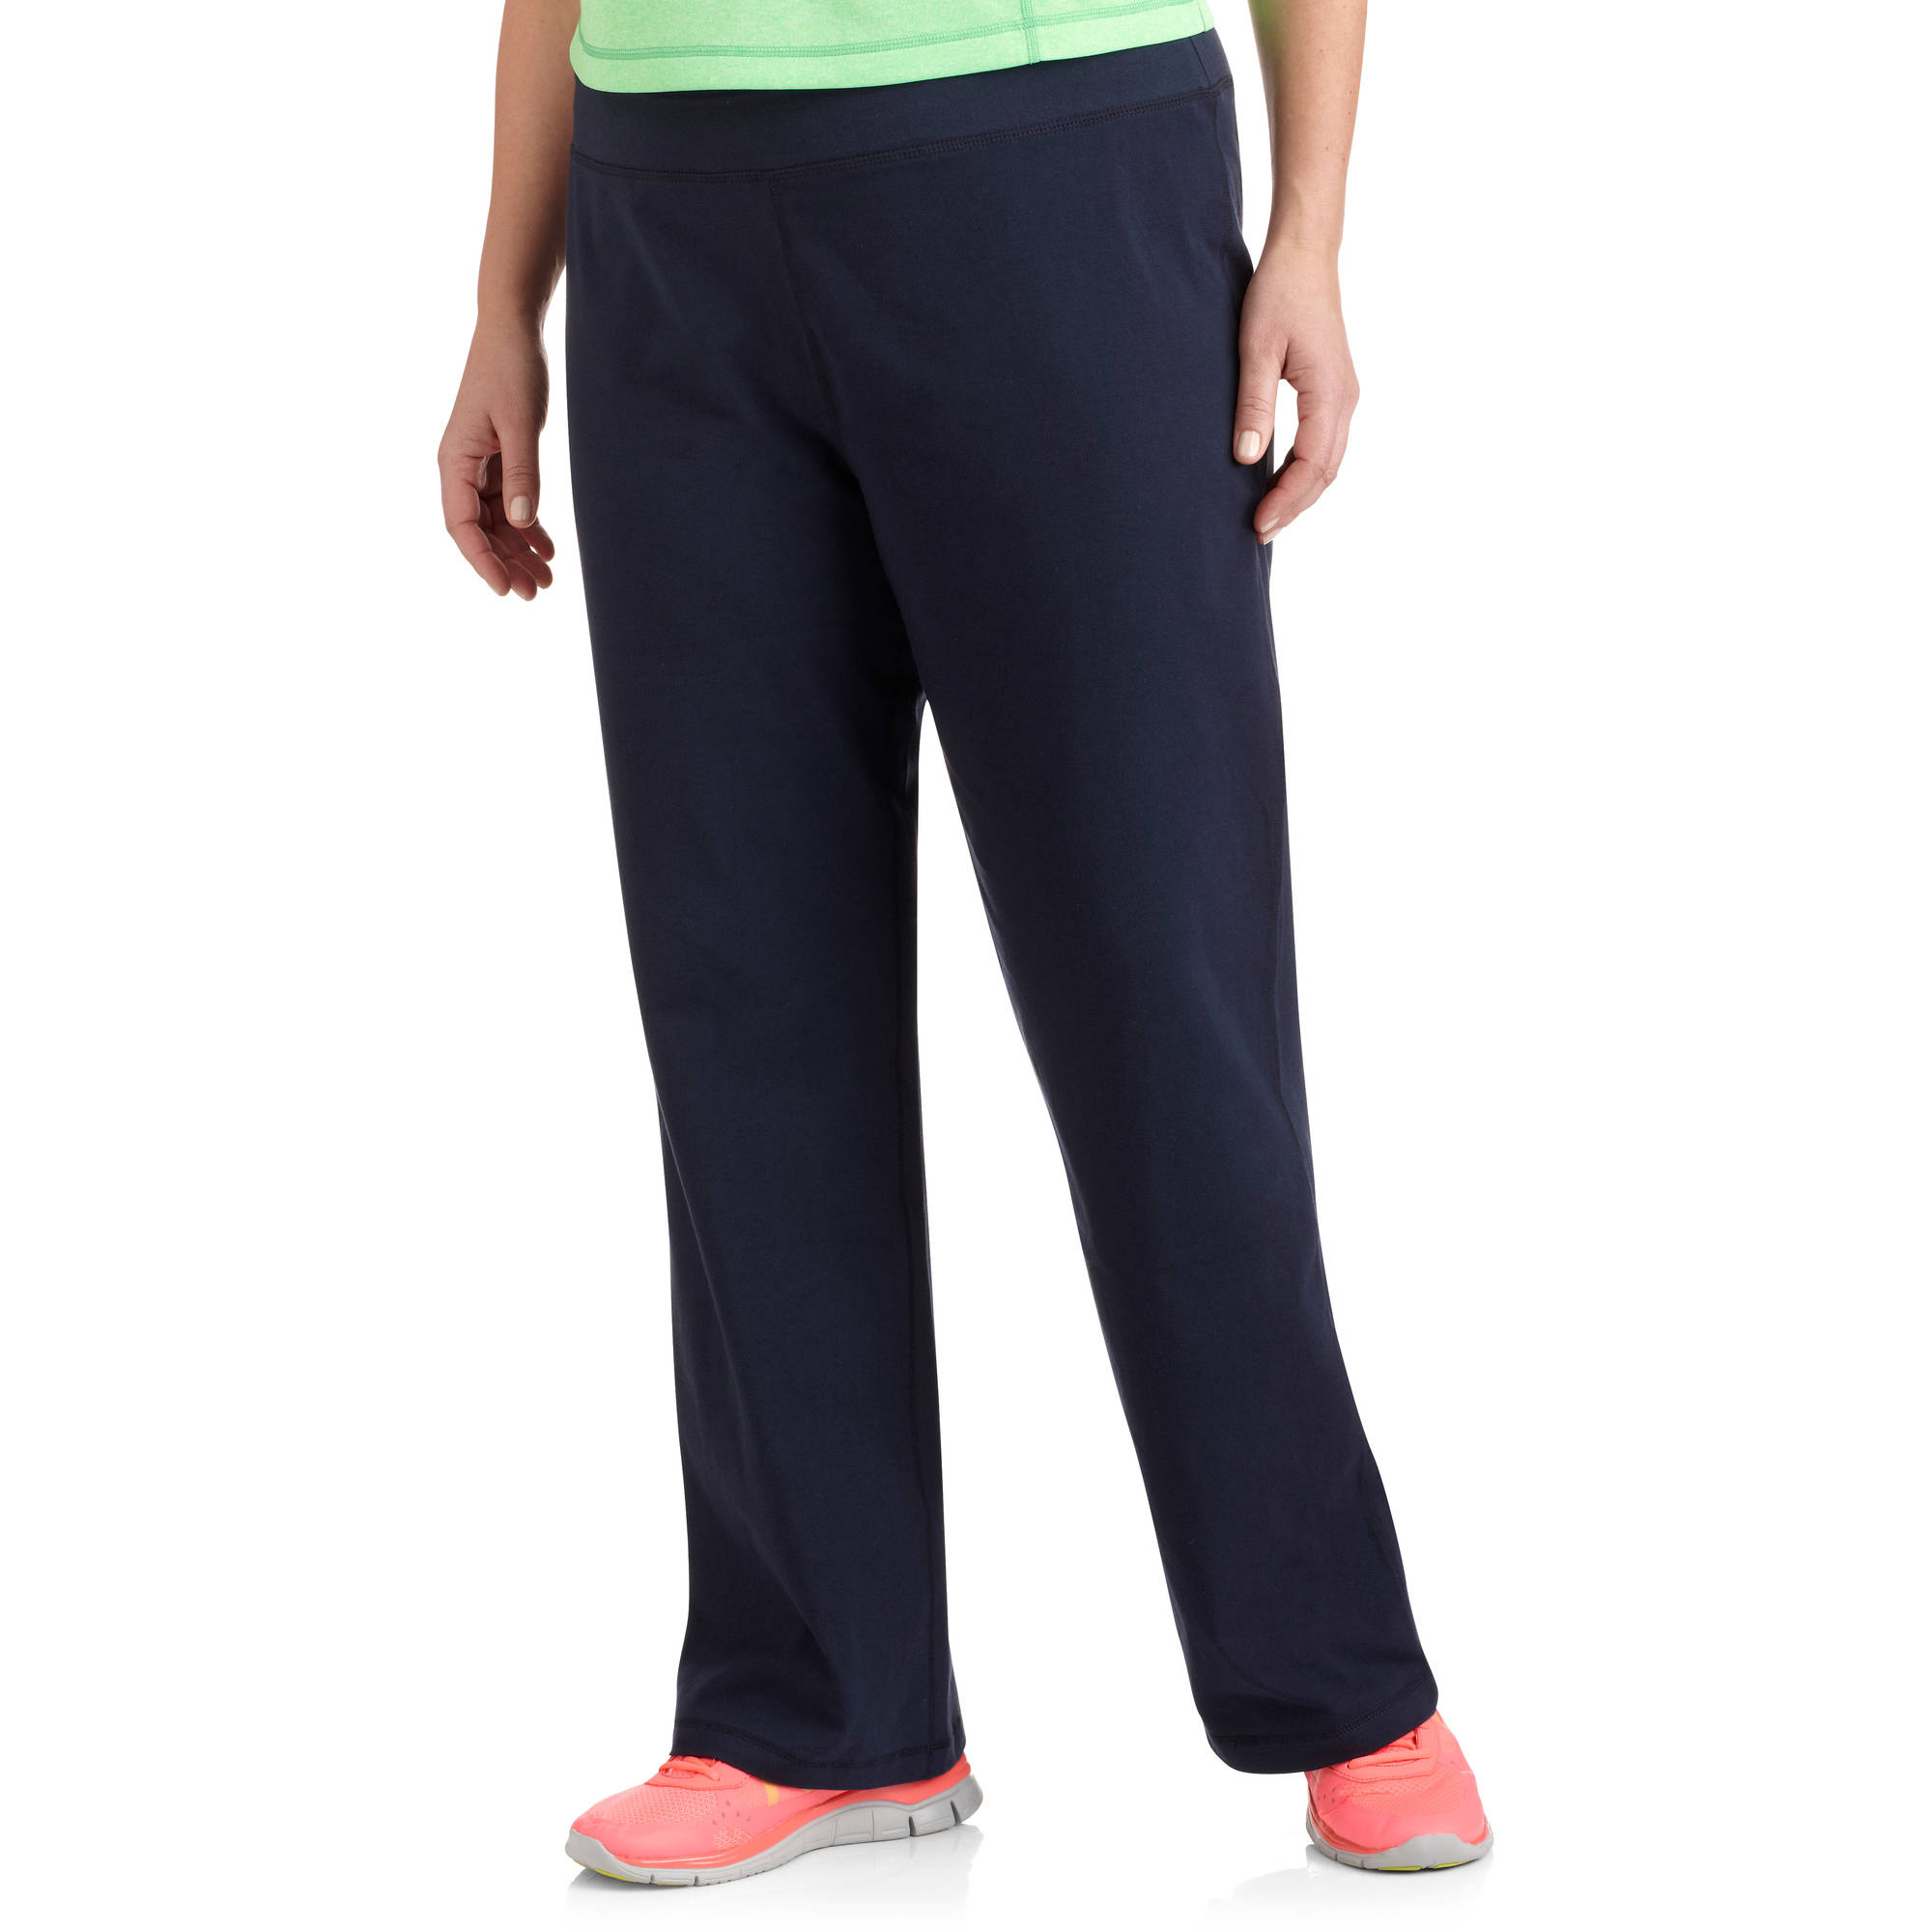 08007fdd81208 Danskin Now - Women's Plus Size Dri More Core Bootcut Workout Pants -  Walmart.com